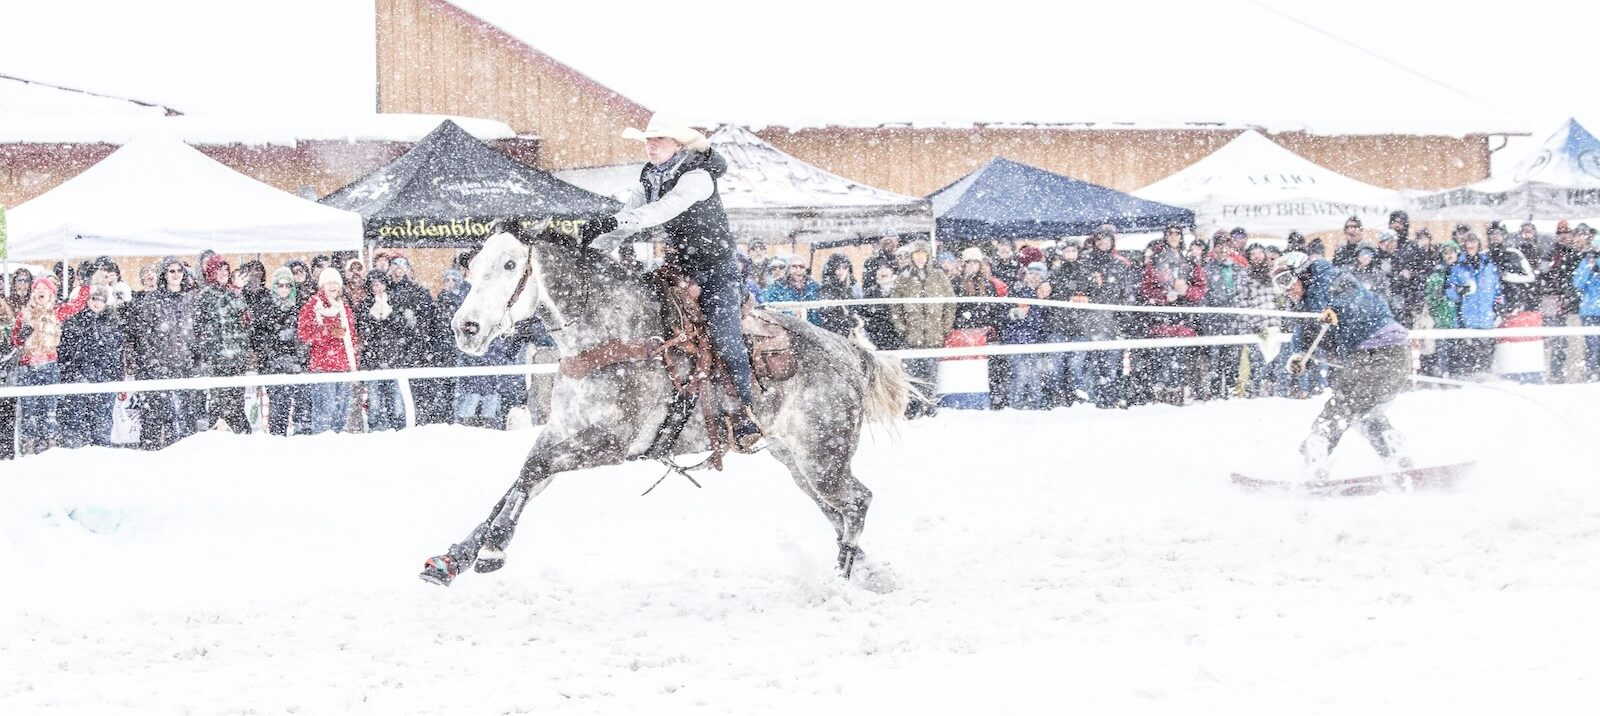 snowing san juan skijoring ouray county fairgrounds